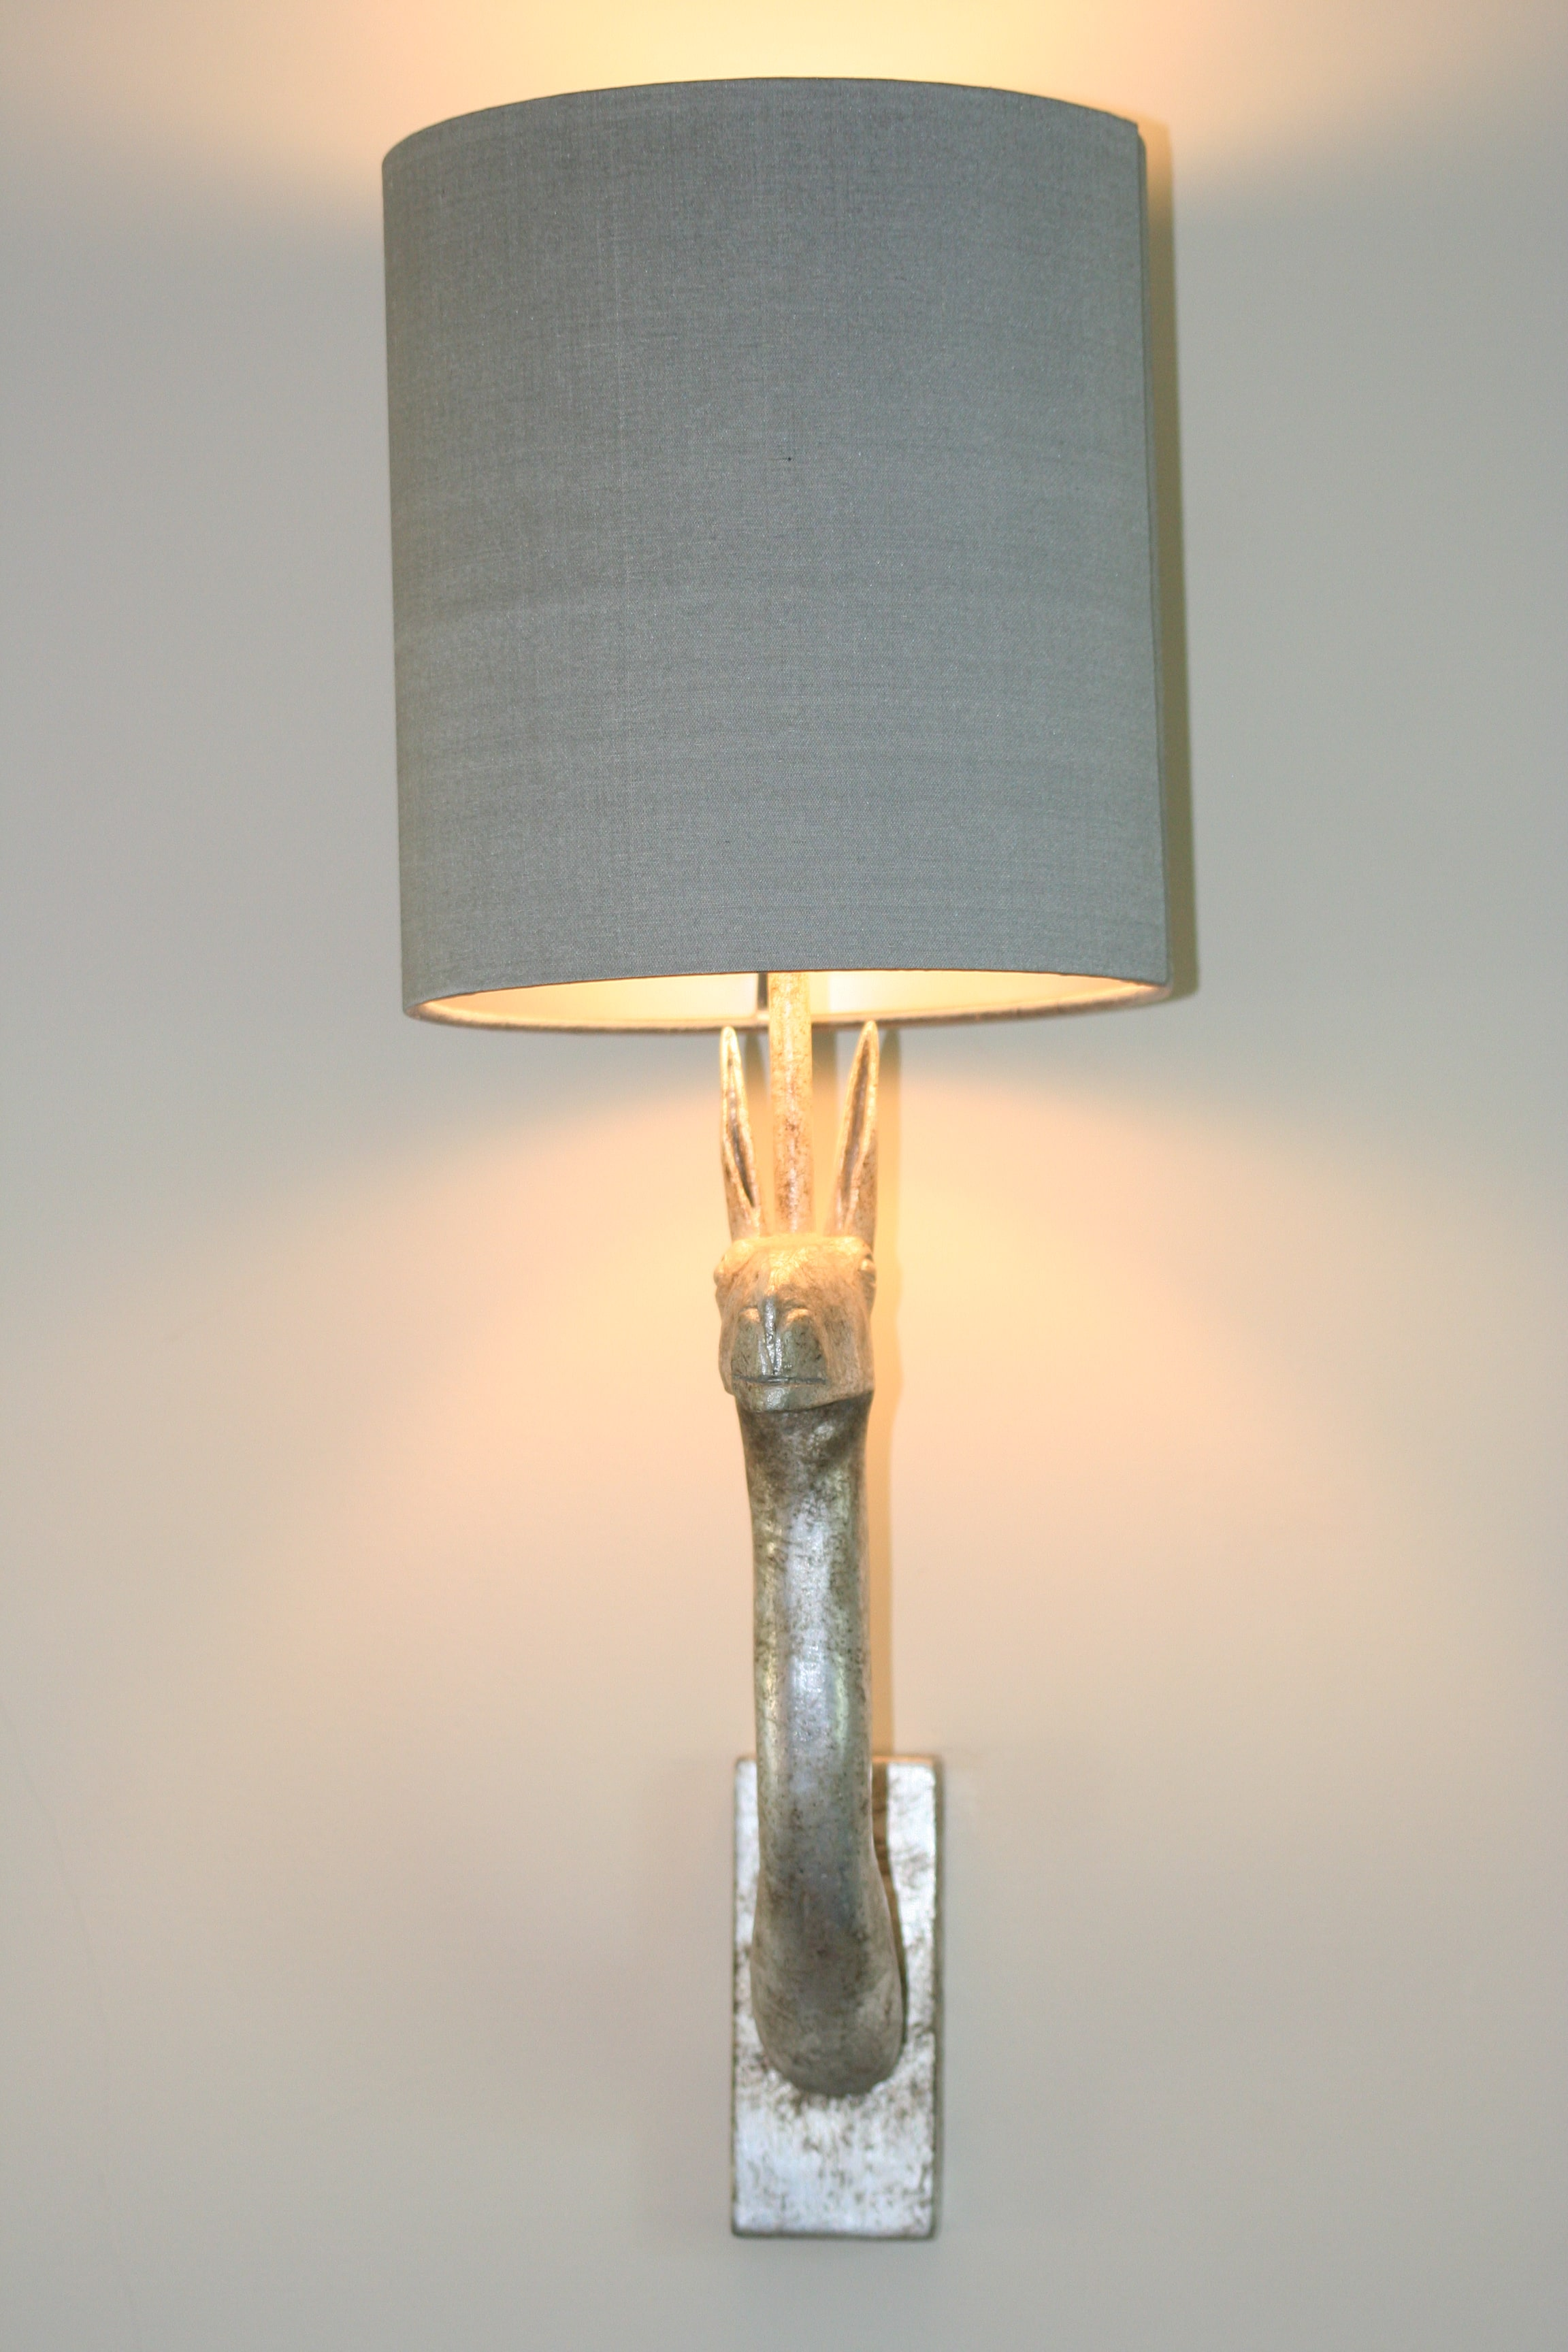 Lama Wall Lamp with Decayed Silver by Porta Romana-min.jpg